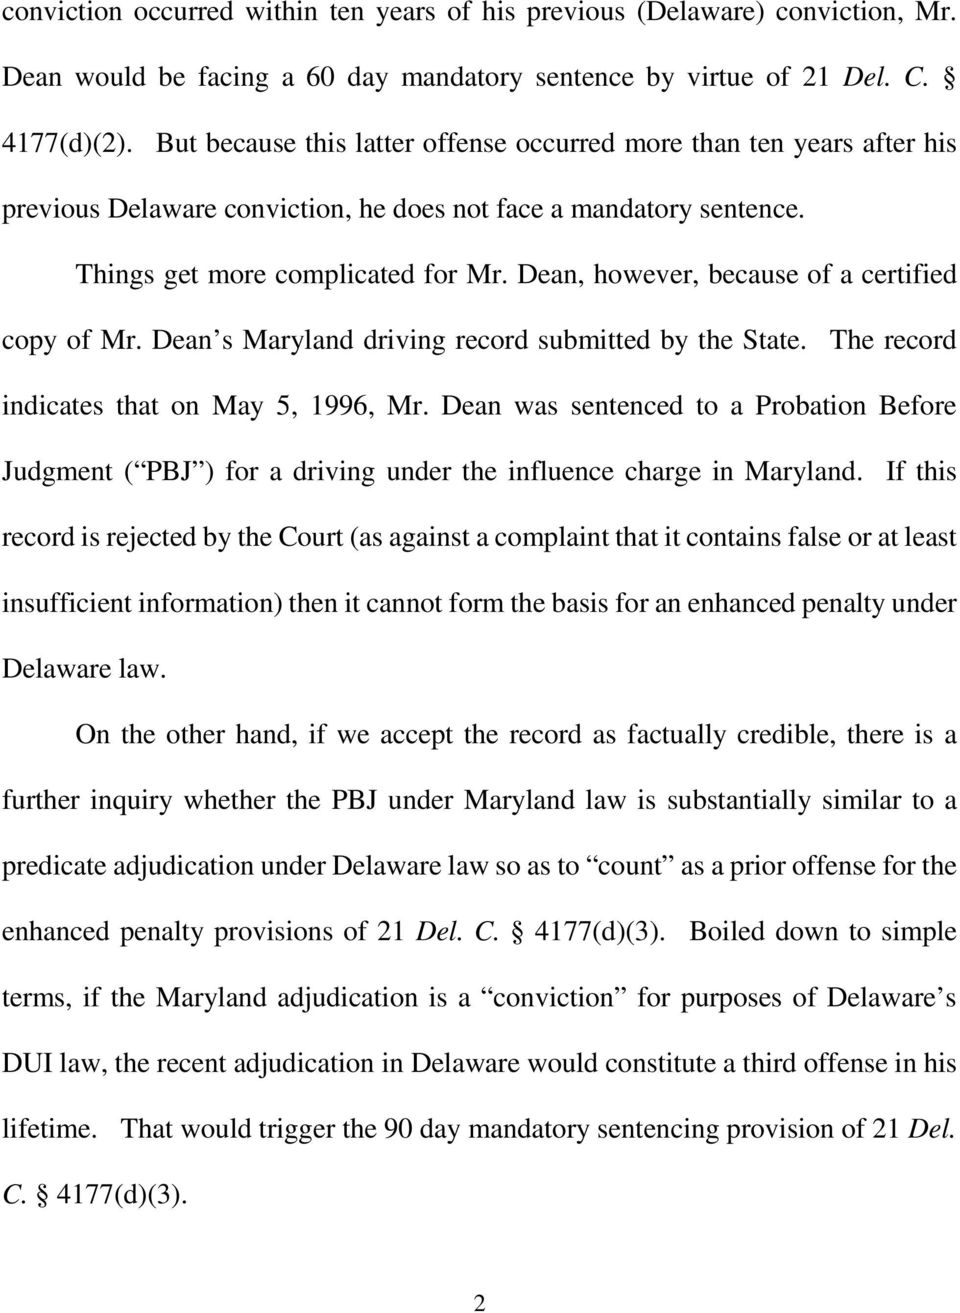 Dean, however, because of a certified copy of Mr. Dean s Maryland driving record submitted by the State. The record indicates that on May 5, 1996, Mr.